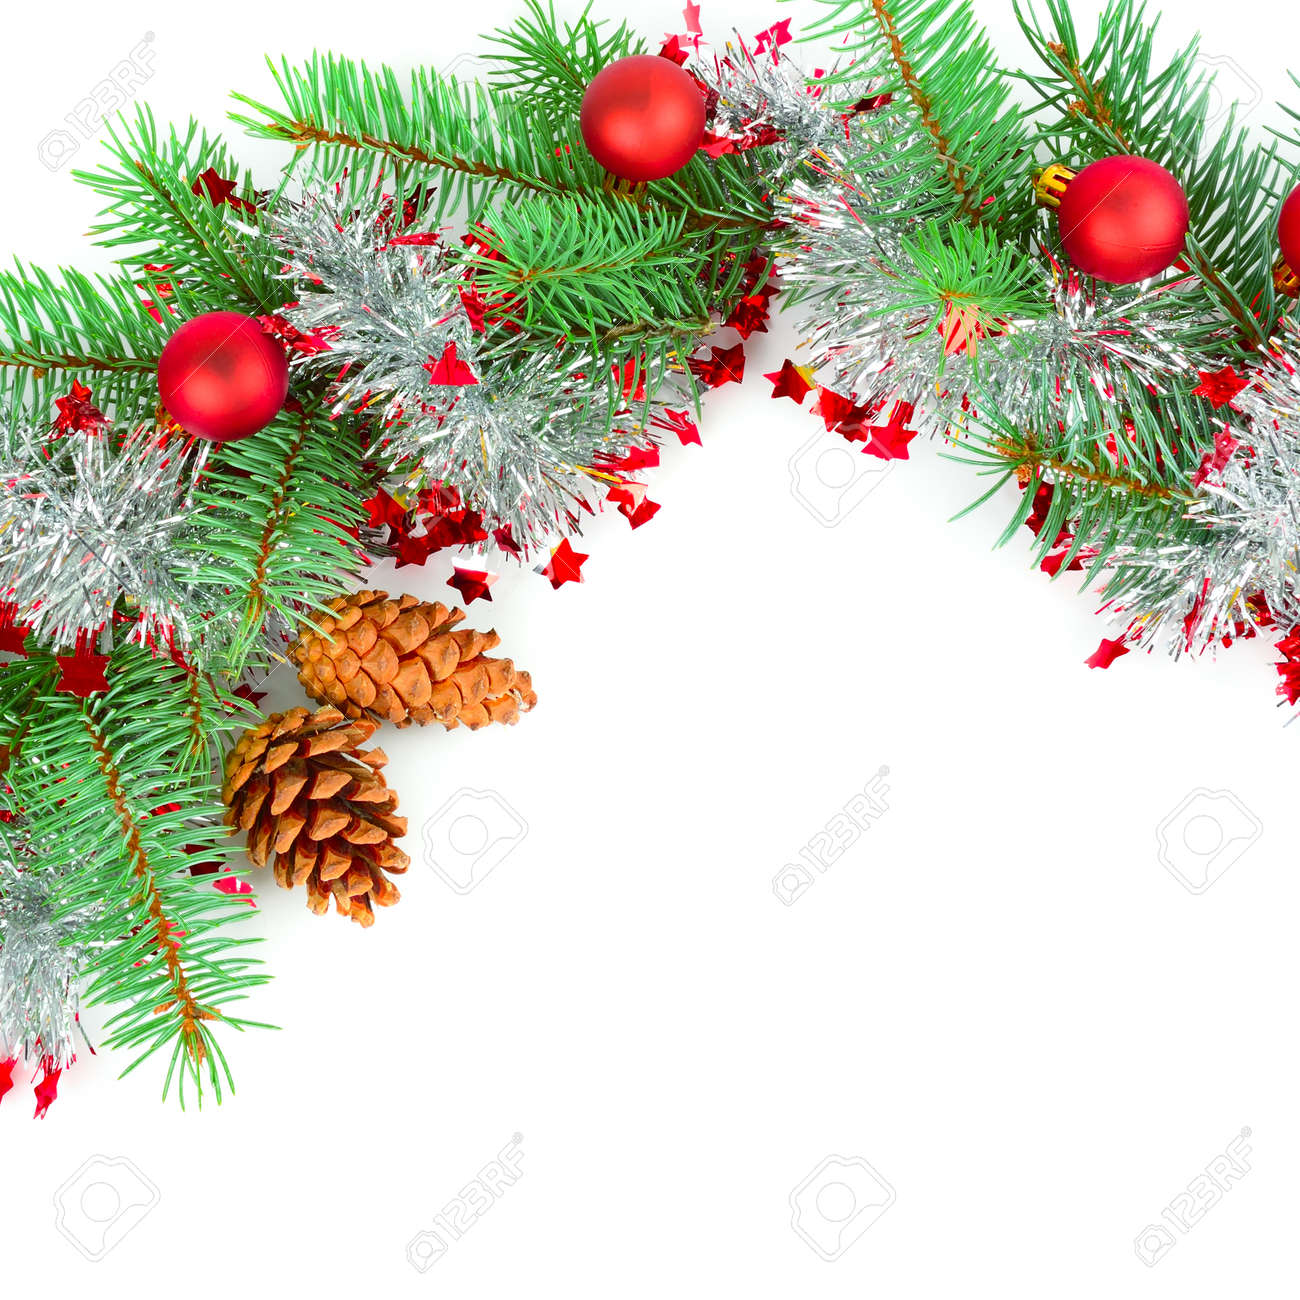 Christmas decoration baubles with branches of fir tree isolated on white - 130211702